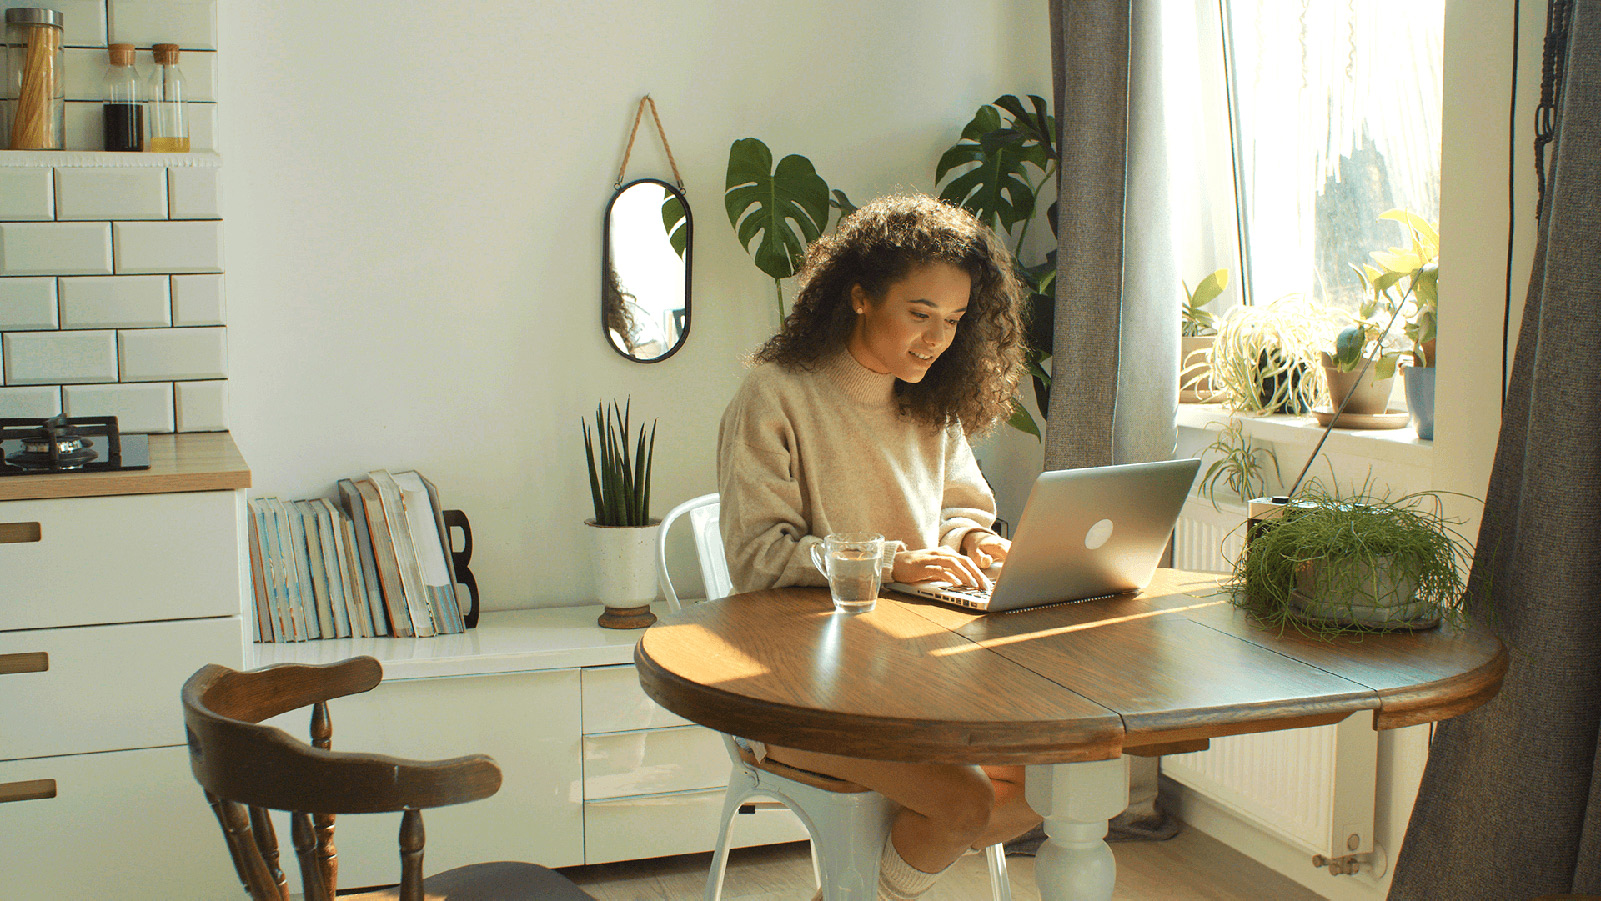 Woman working on a laptop in her sunny kitchen.